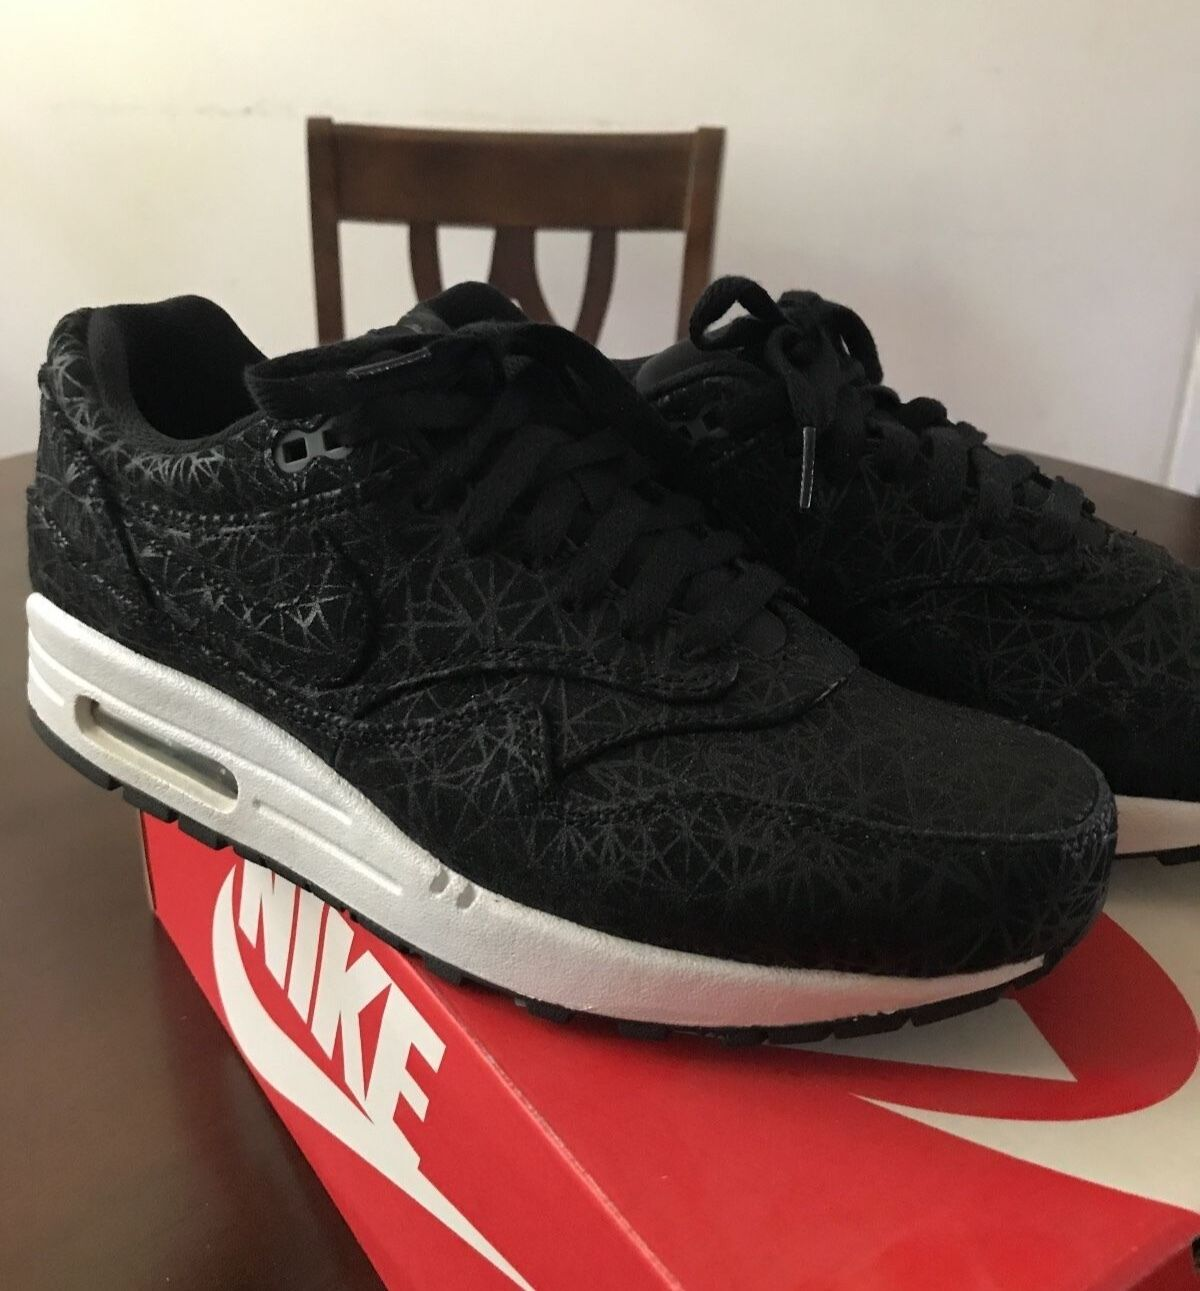 NIKE AIR MAX 1 PRM PREMIUM GEOMETRIC BLACK/DARK GREY SIZE 8